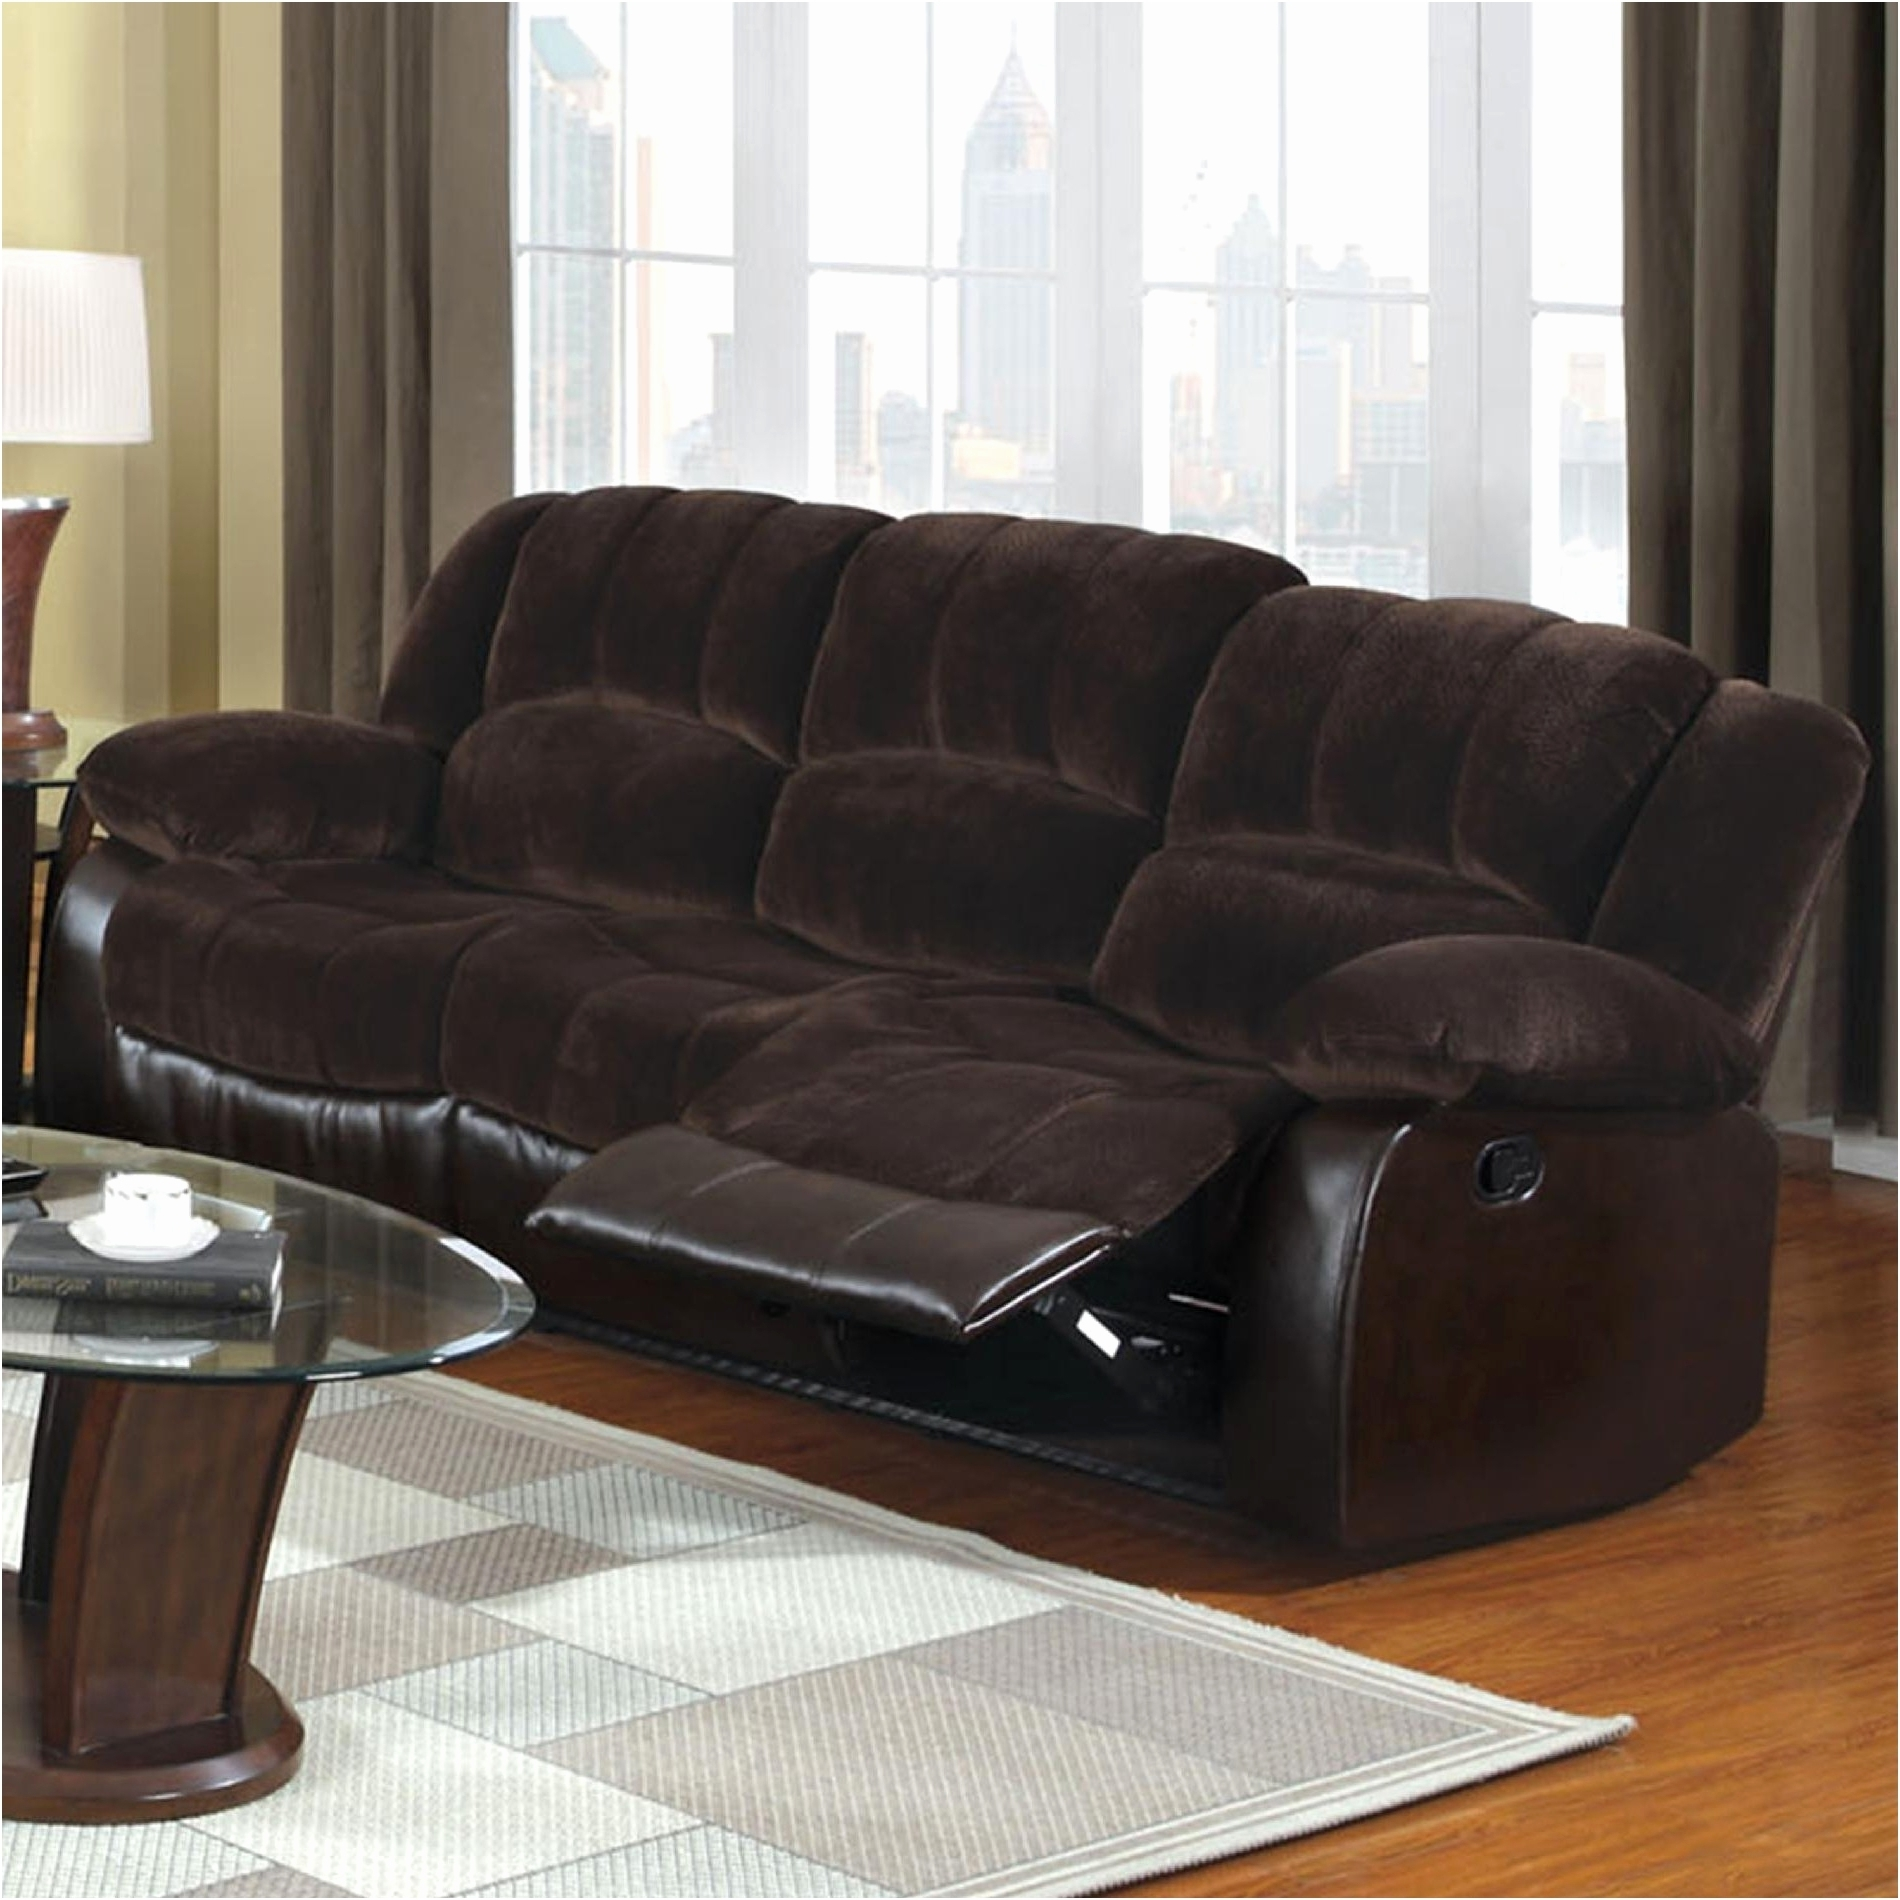 Favorite Fresh Sears Leather Sofa New – Intuisiblog In Sectional Sofas At Sears (View 1 of 15)